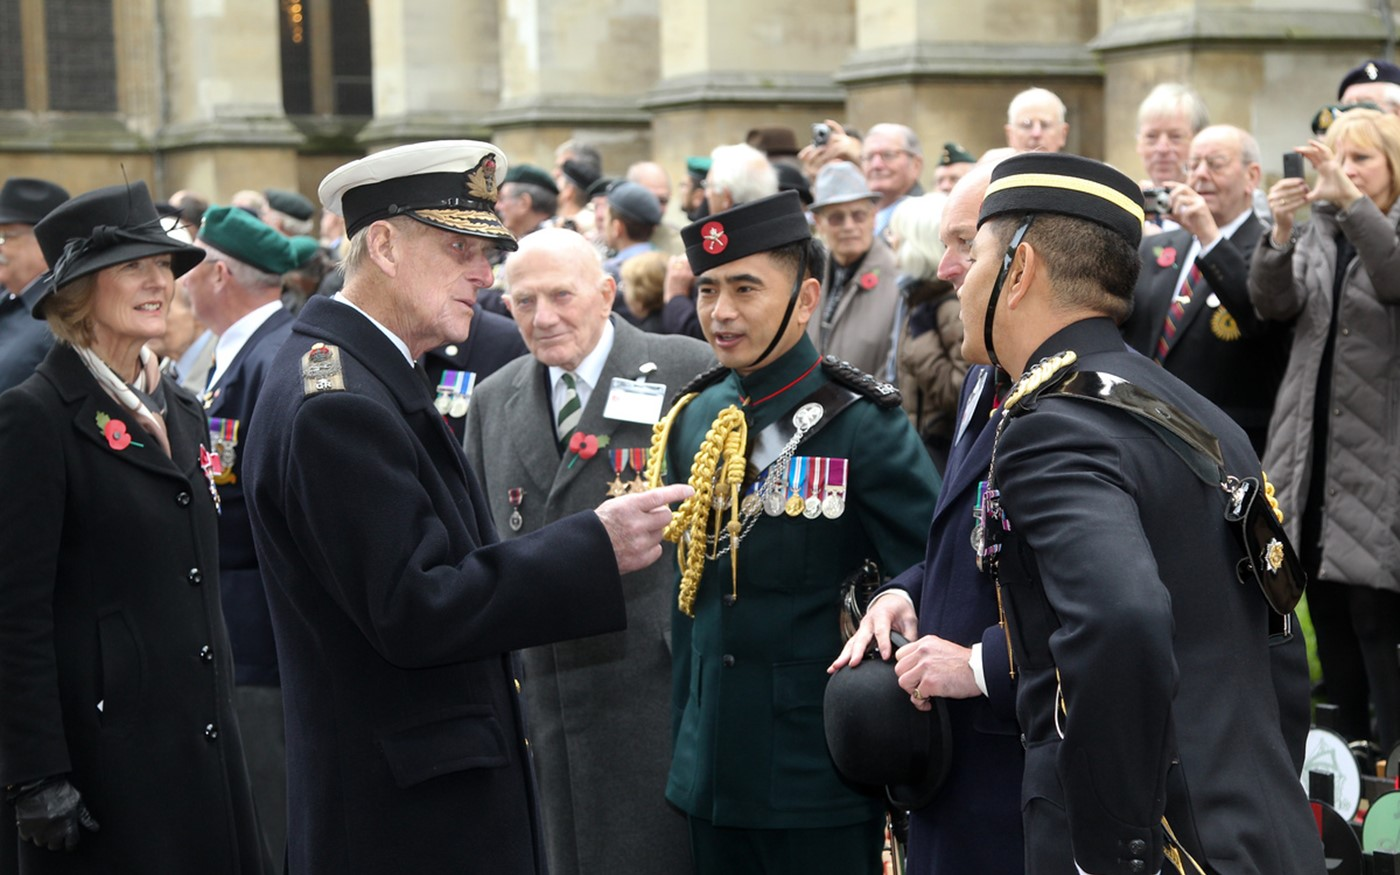 The Duke of Edinburgh tours the field and meets veterans